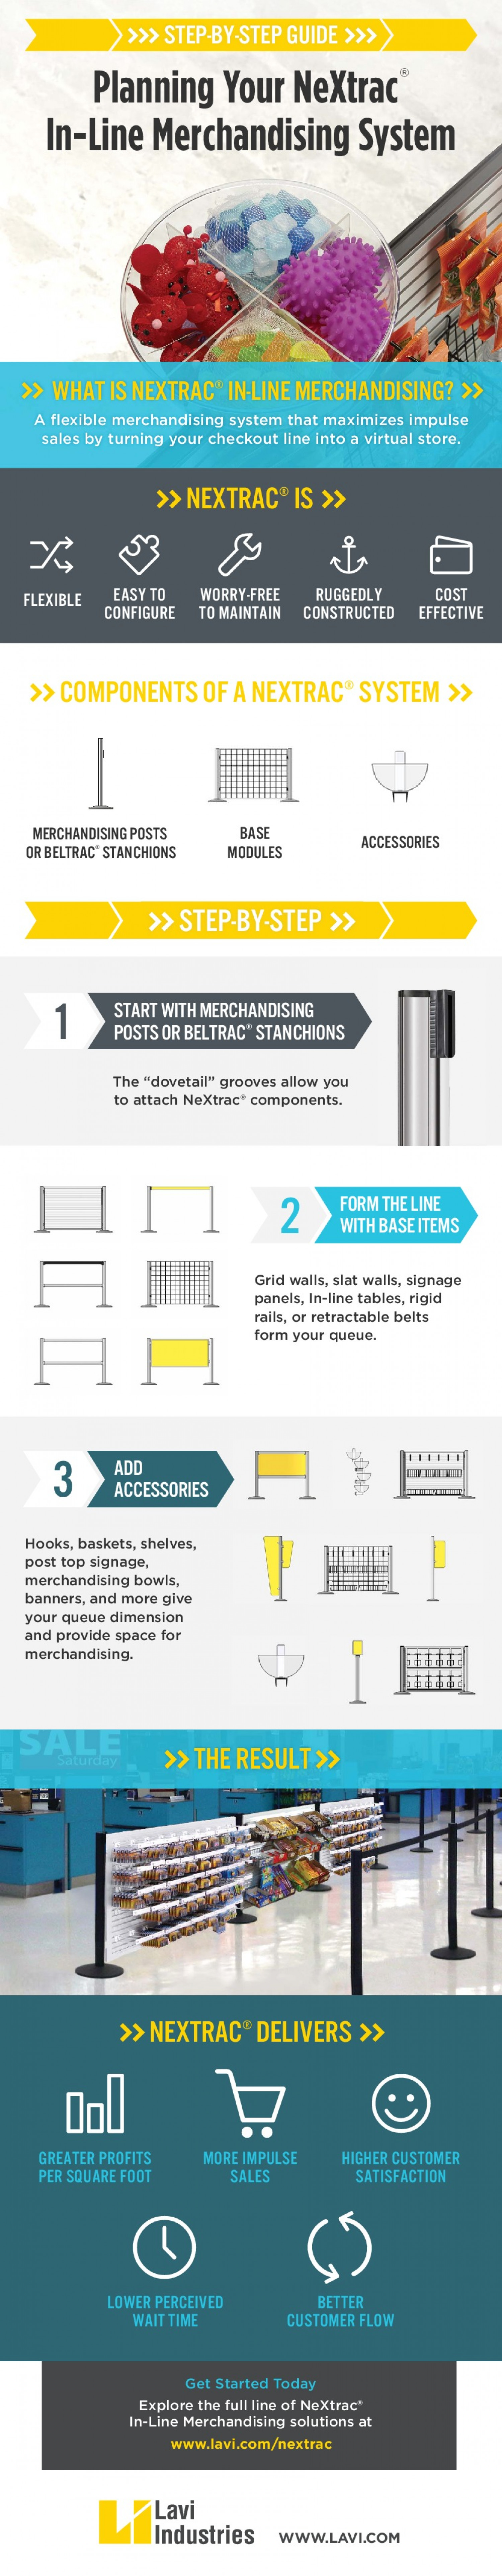 Step by Step Guide to Planning Your NeXtrac In-Line Merchandising System Infographic